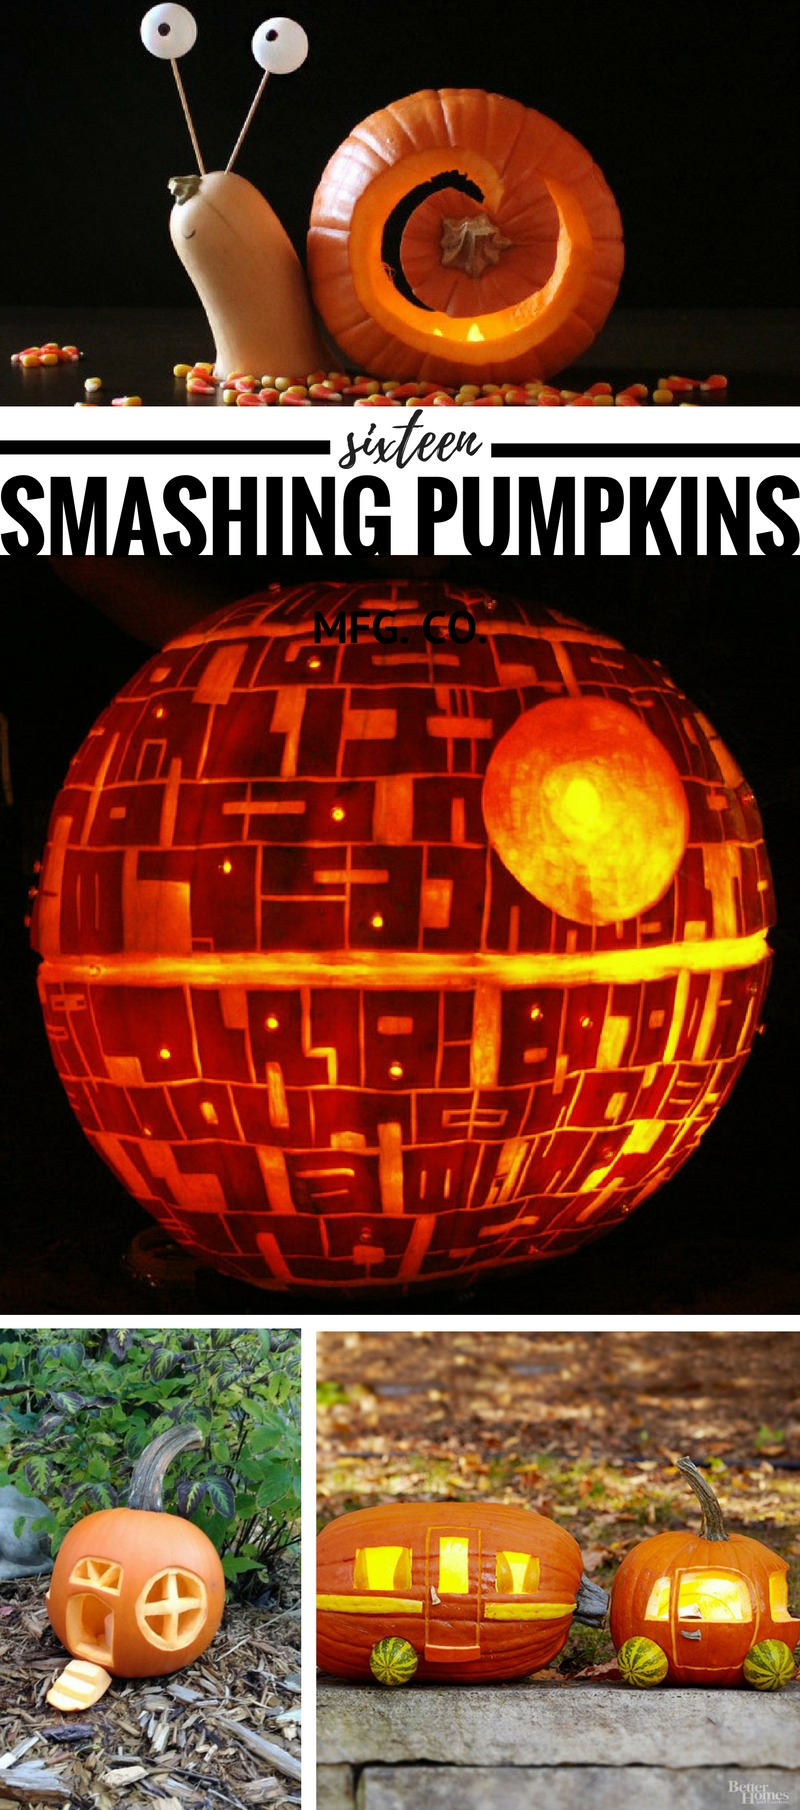 16-smashing-pumpkins-tinsel-wheat